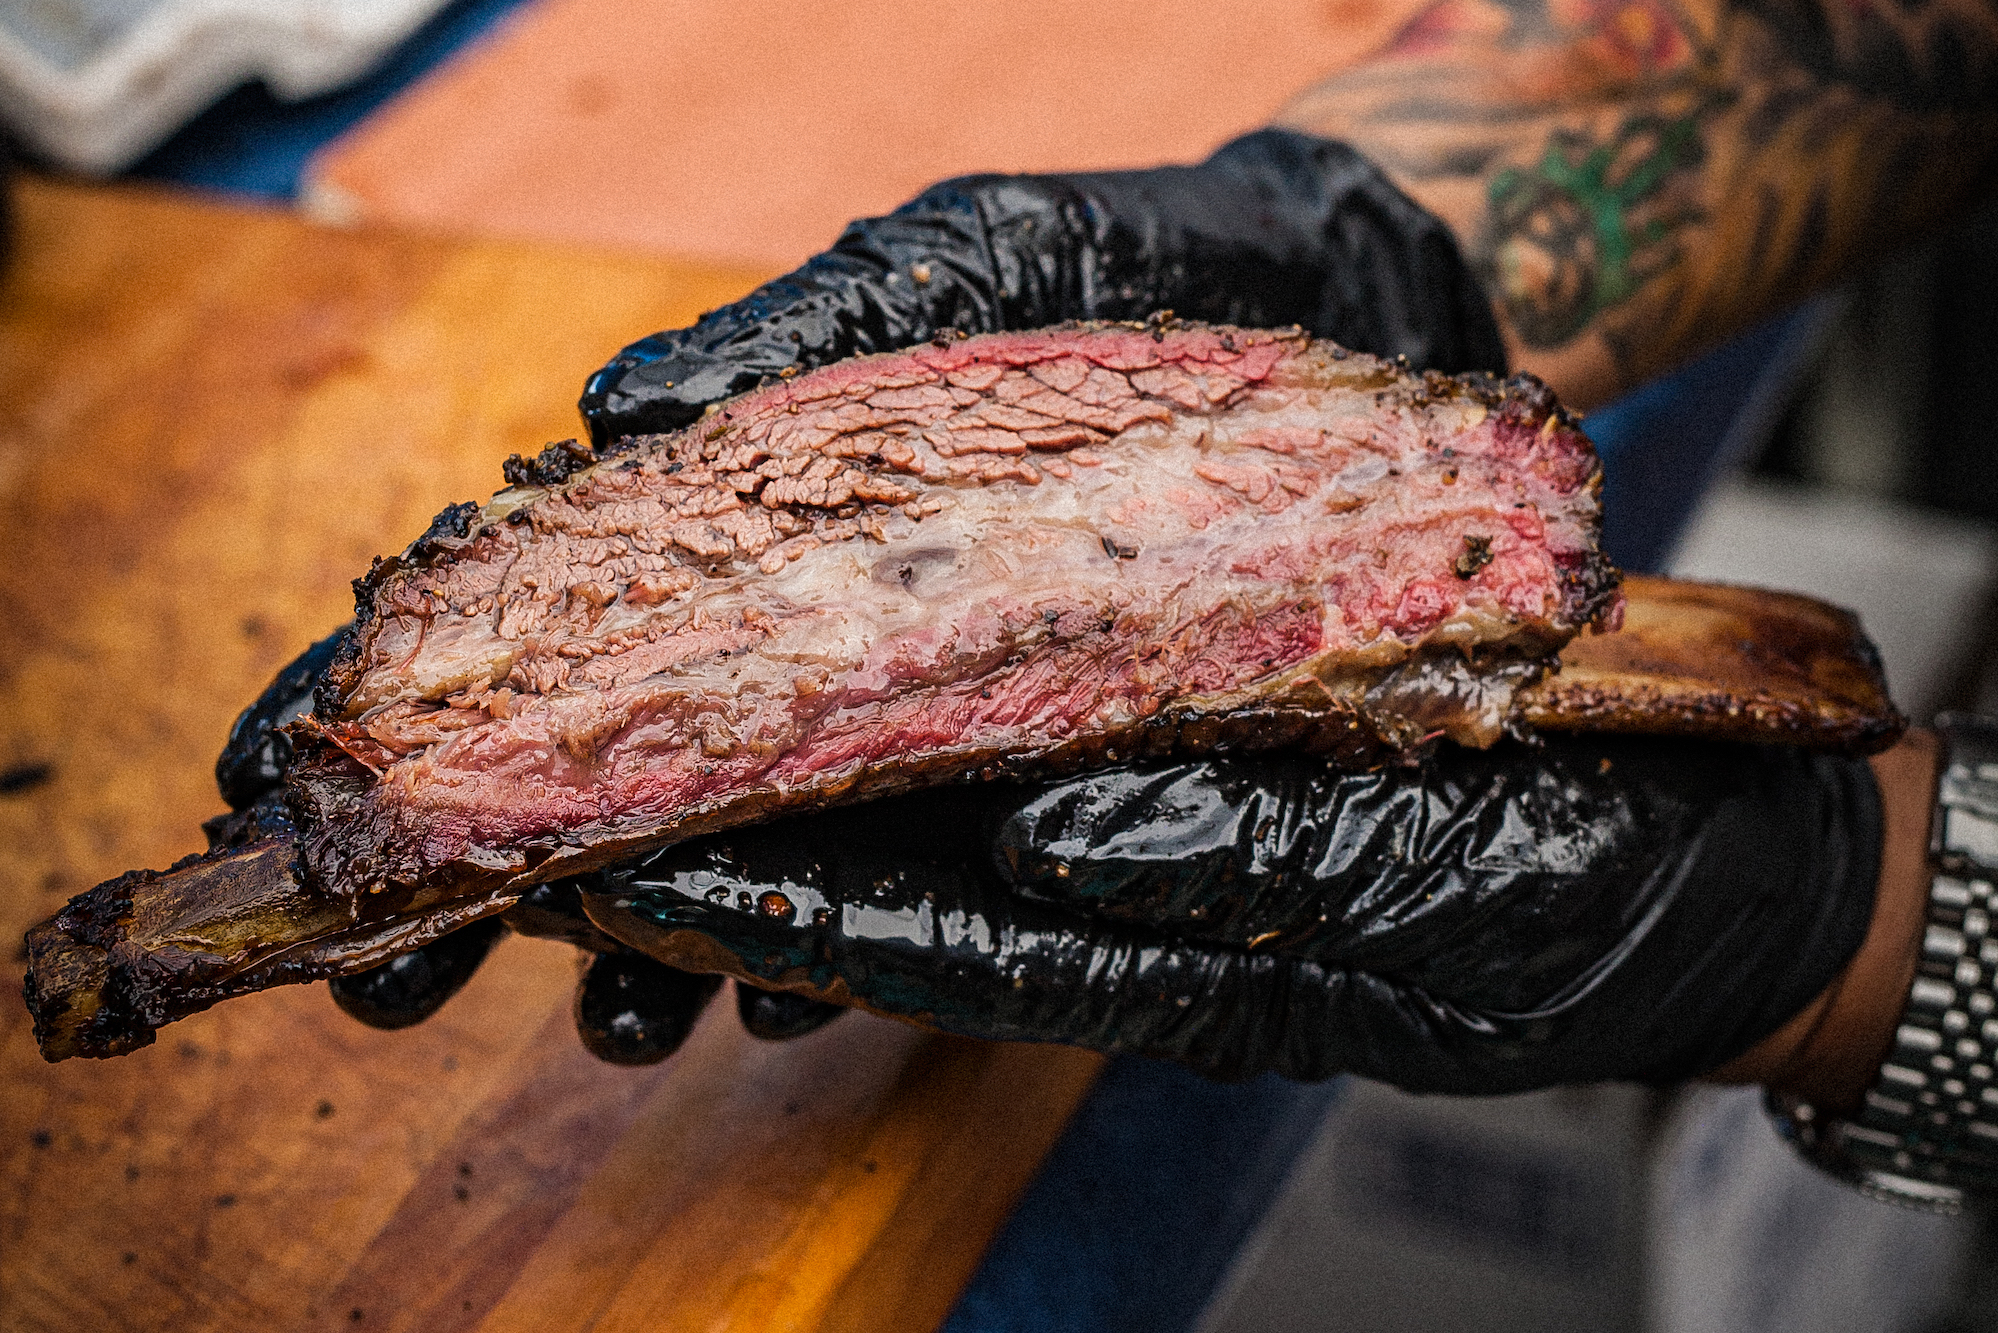 A beef rib fresh off the smoker held by black-gloved hands.